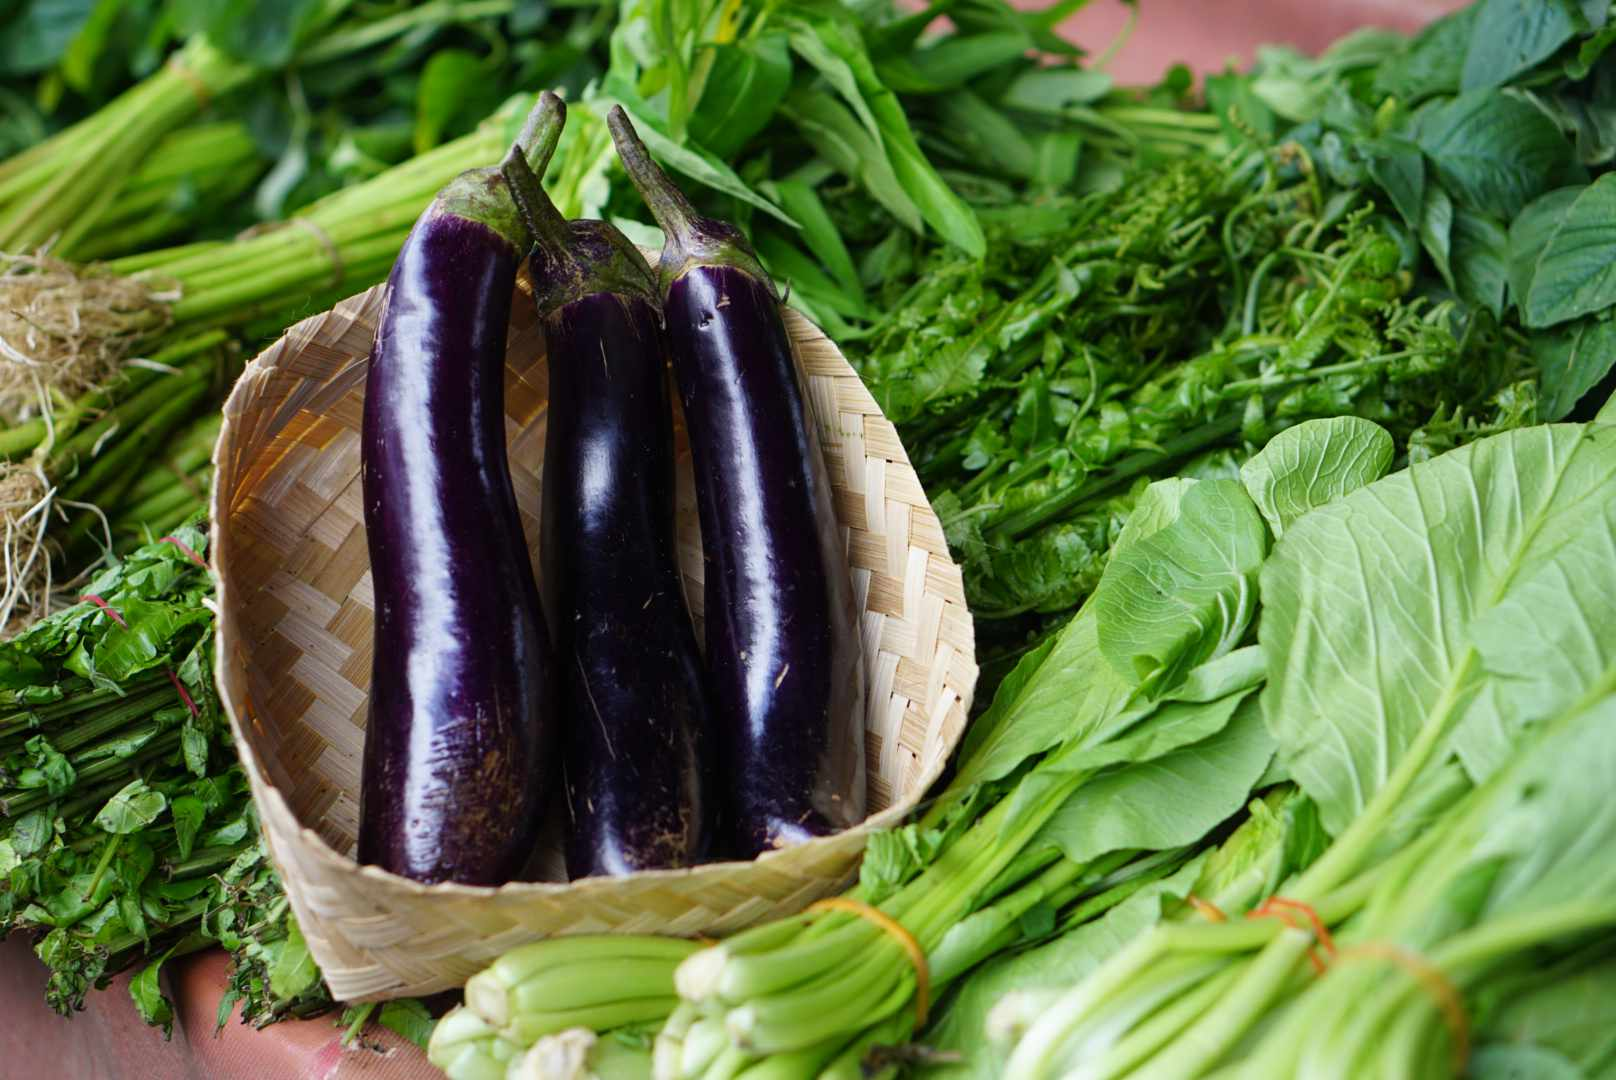 Three long eggplants in woven basket resting on harvested vegetables